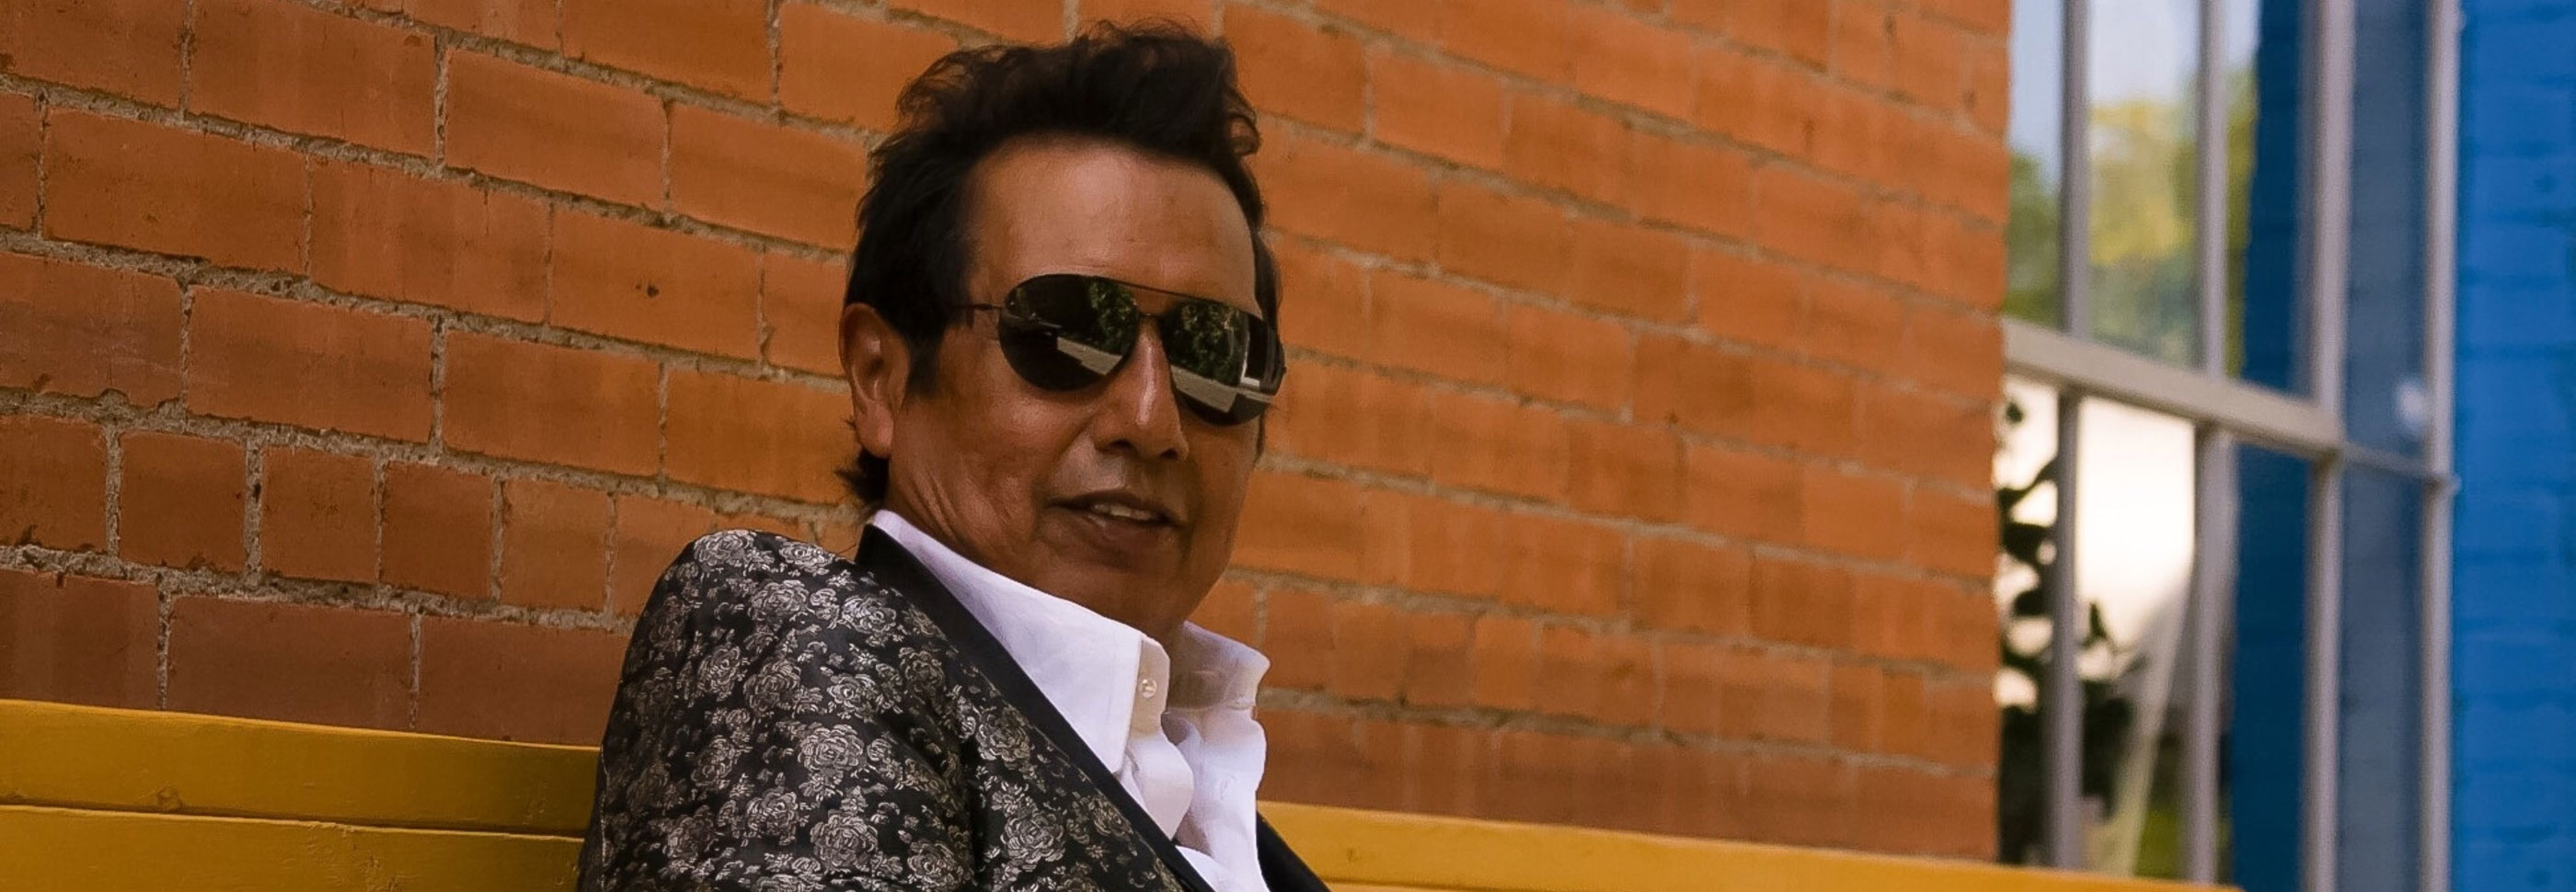 Alejandro Escovedo for Burn Something Beautiful by Nancy Rankin Escovedo